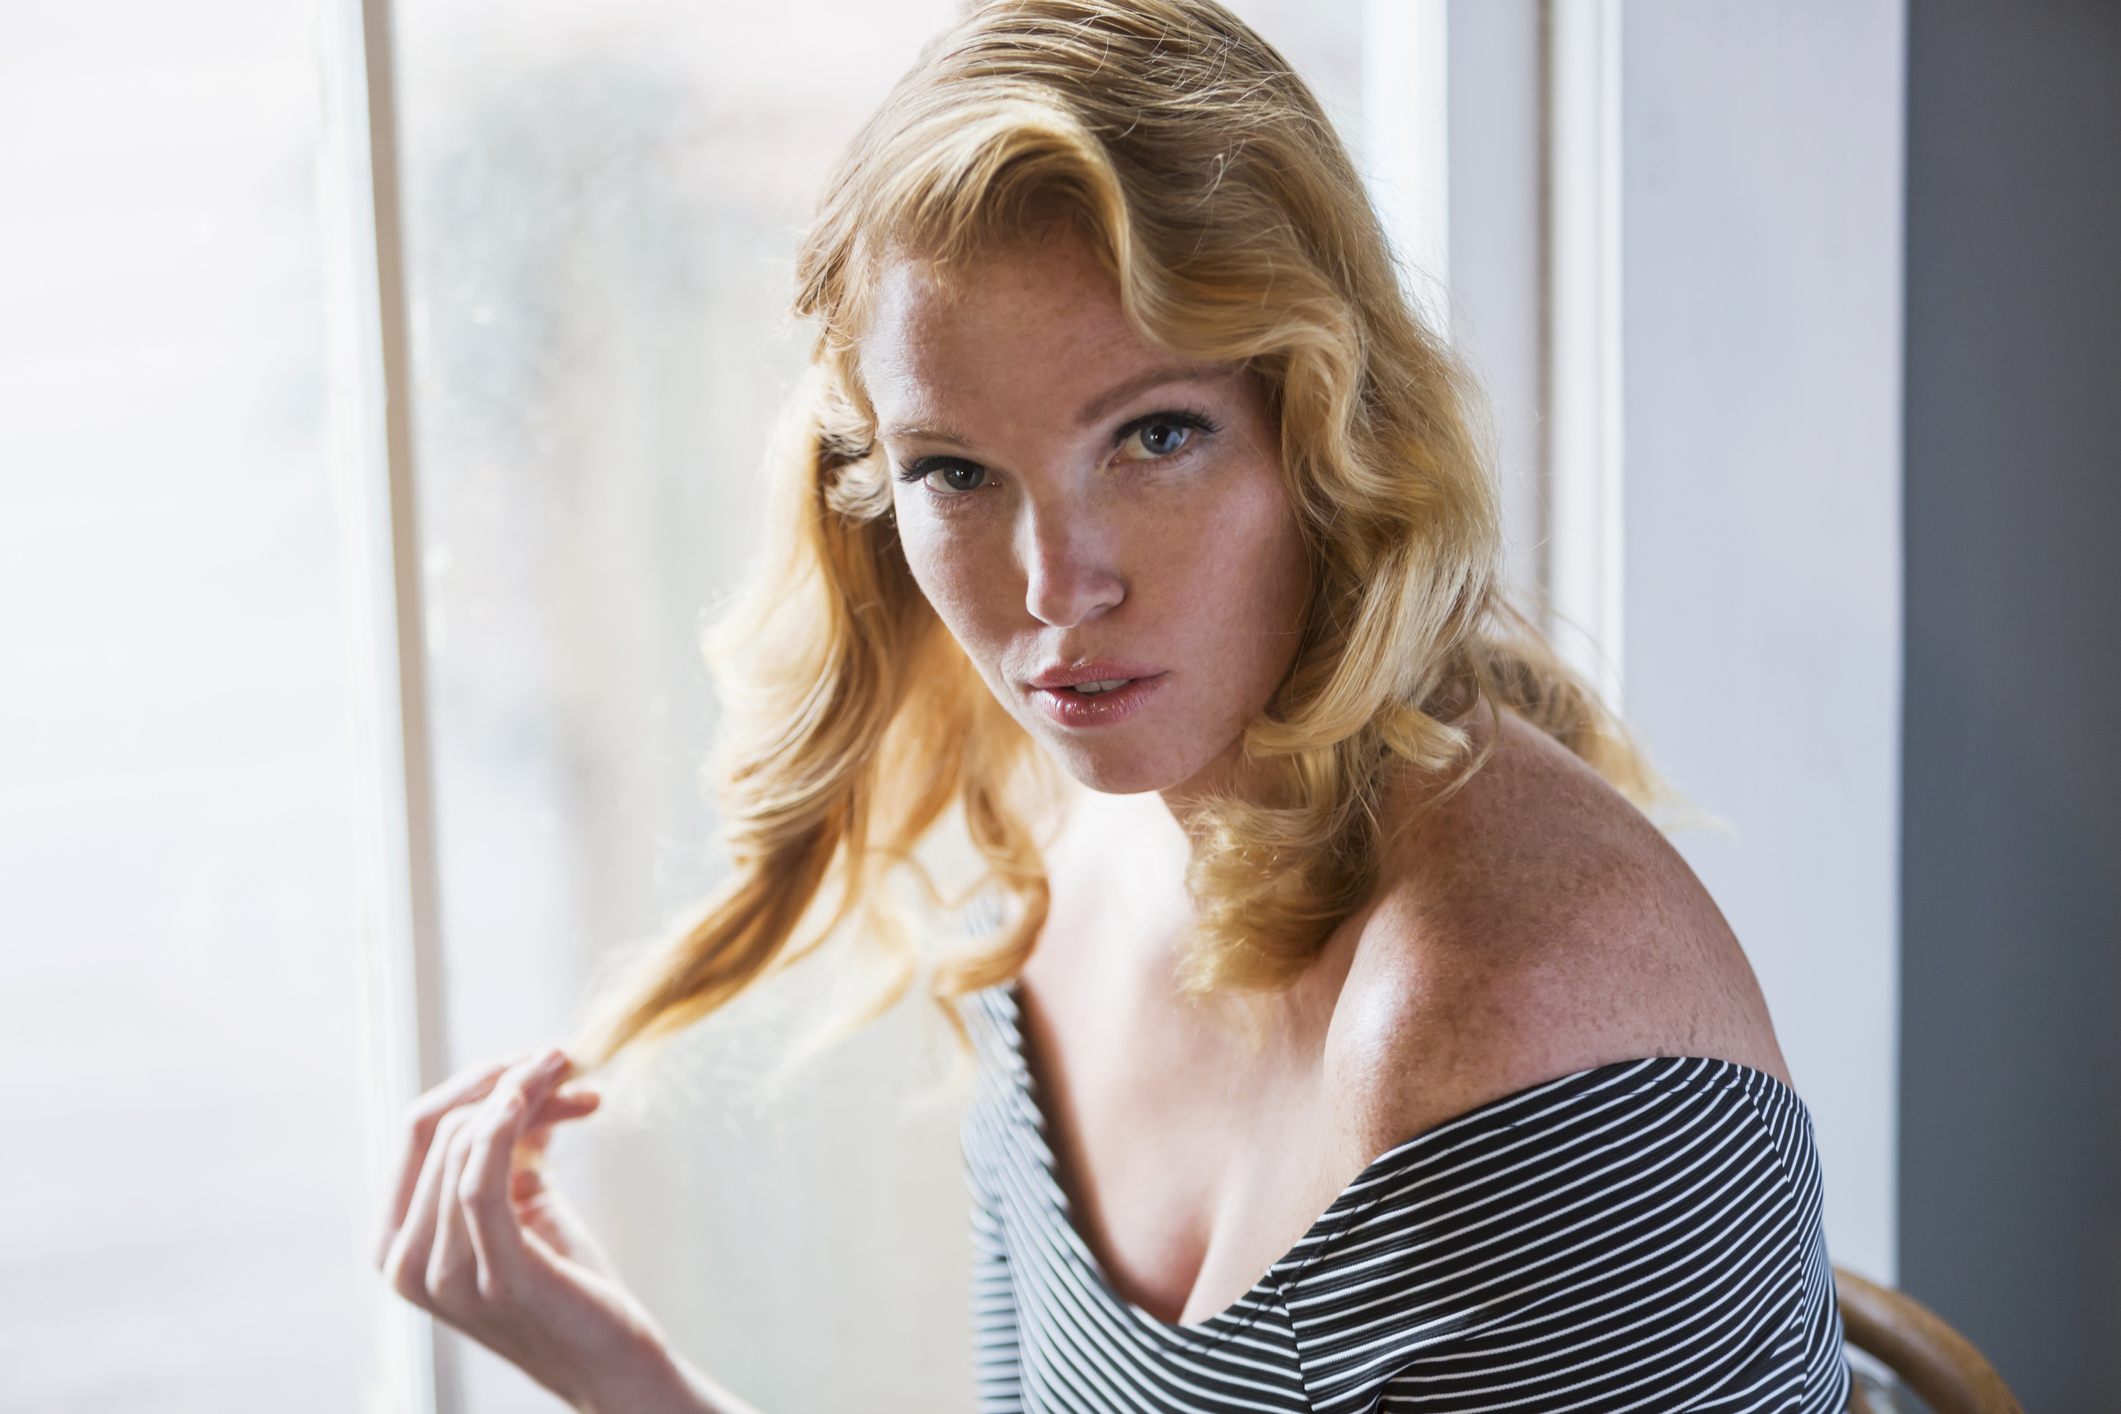 Seductive young blonde woman sitting indoors by sunny window, staring at the camera, playing with her hair.